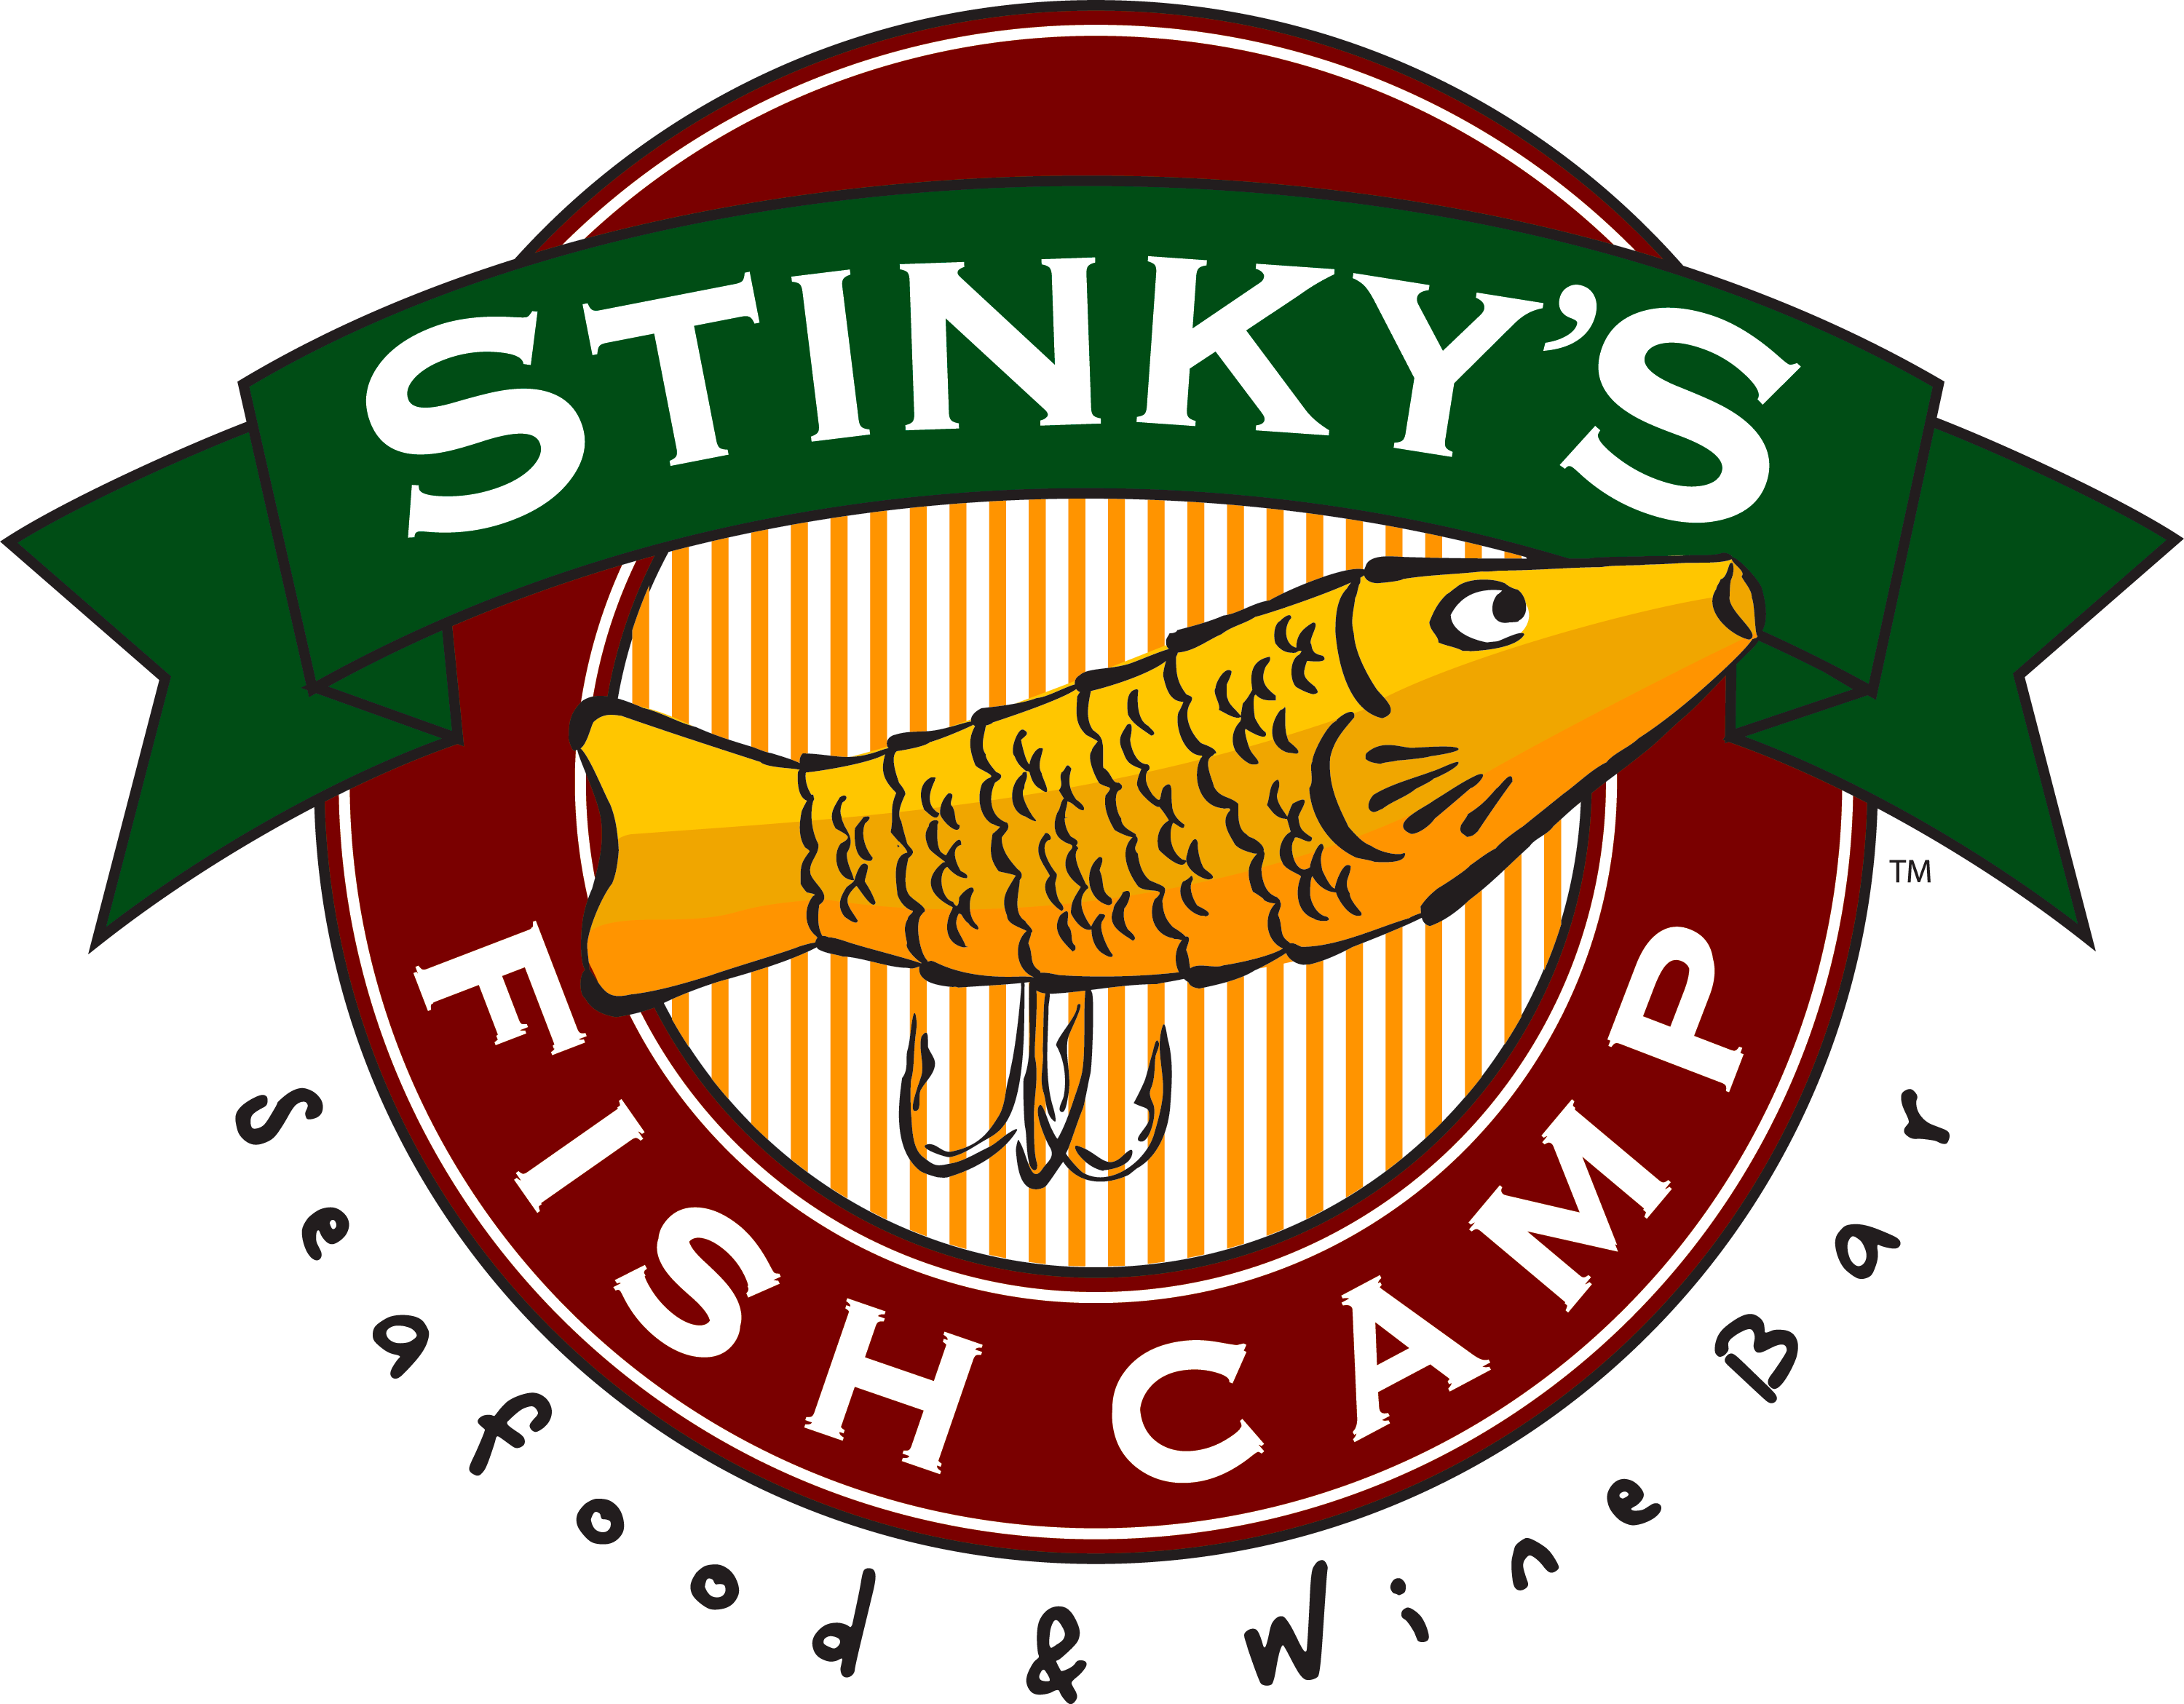 Clipart fish or steak graphic download Stinky's Fish Camp | stinkysfishcamp graphic download